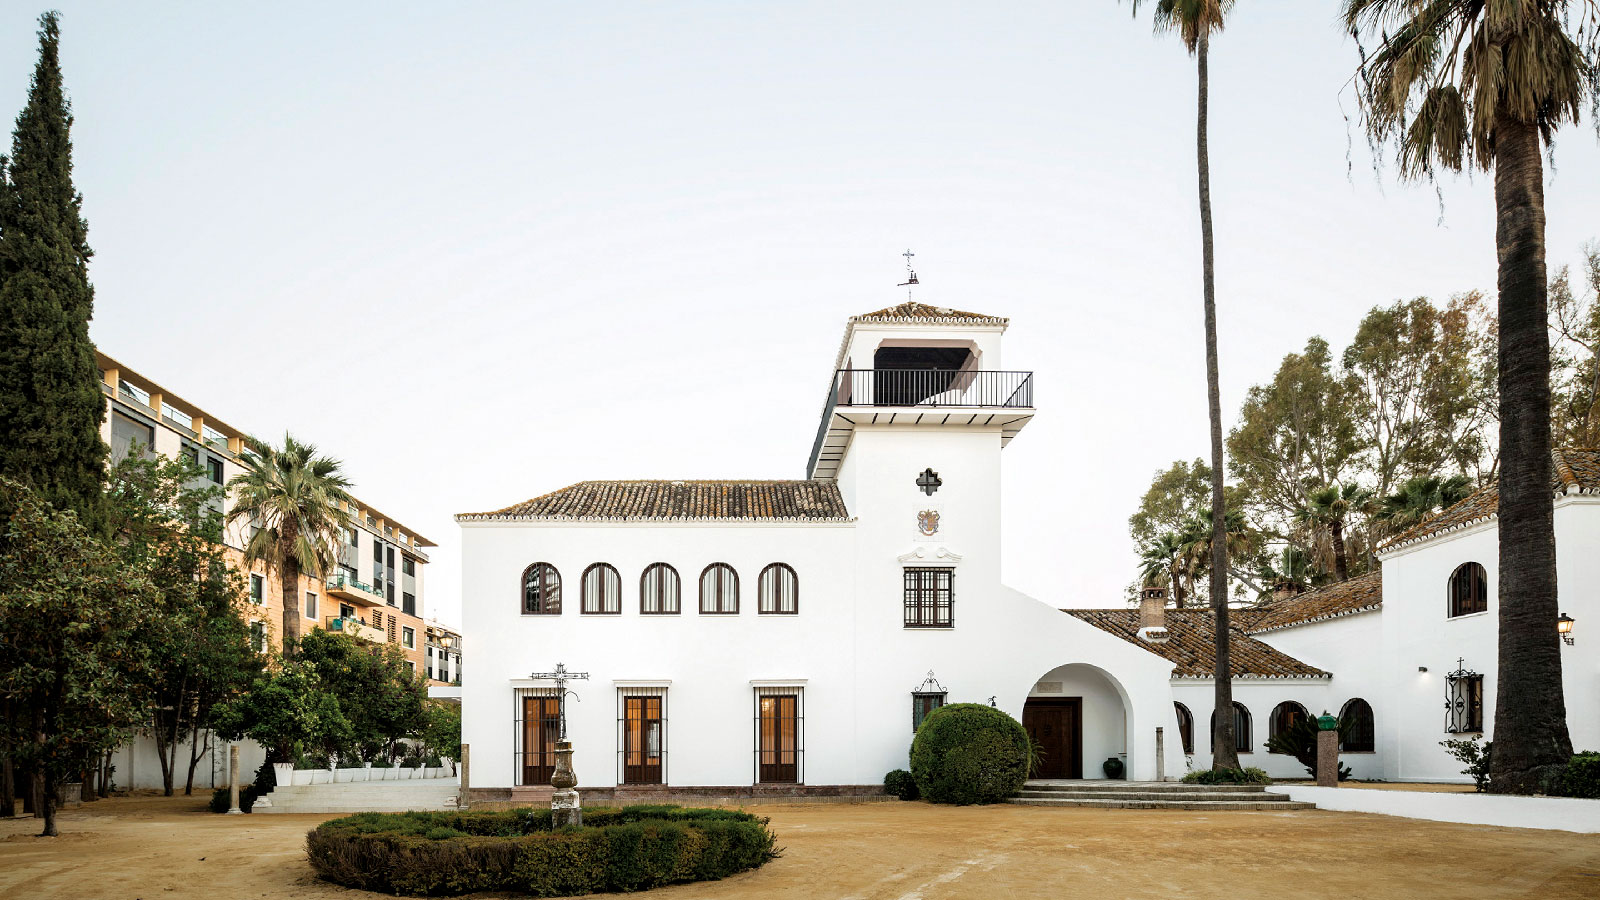 PORCELANOSA Grupo Projects: Huerta de las Palmeras, Andalusian-styled colonial architecture